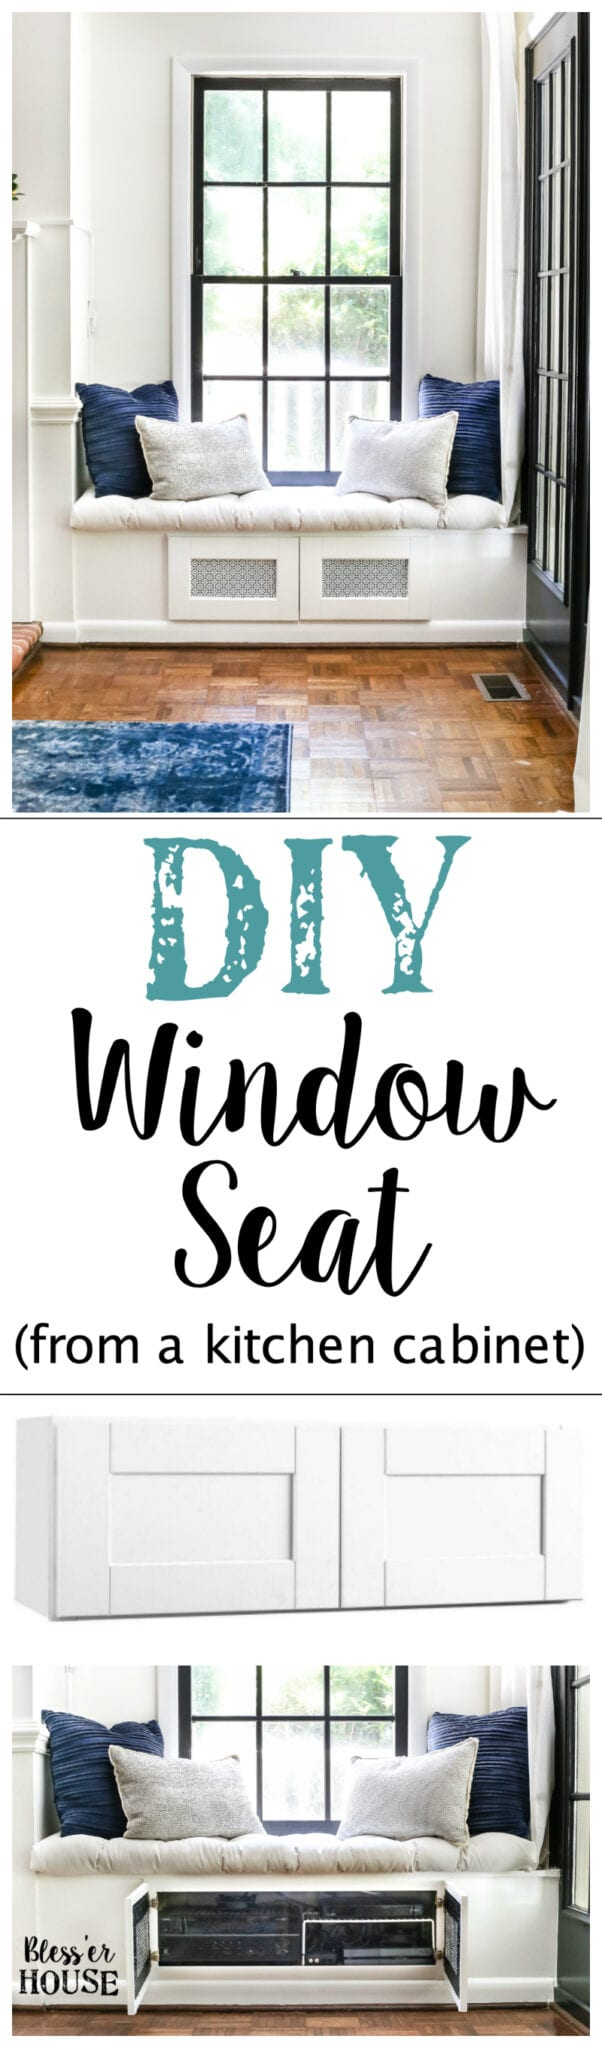 DIY Window Seat From A Kitchen Cabinet | Blesserhouse.com   A Simplified  Tutorial For